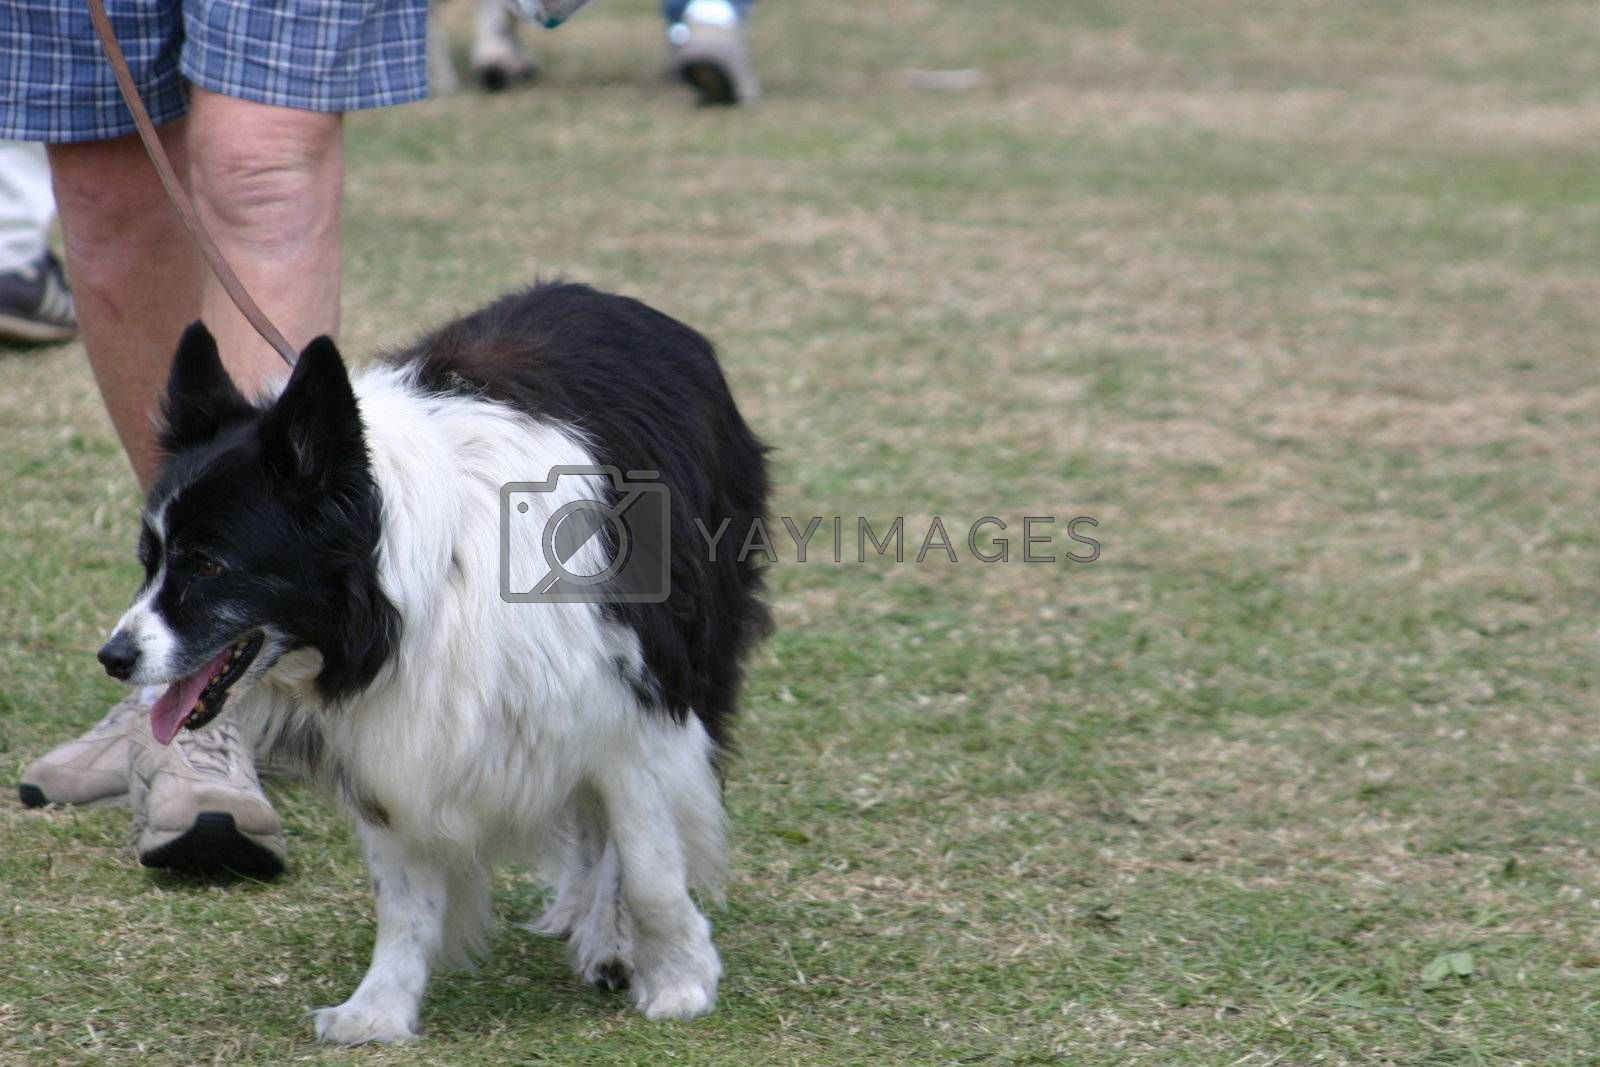 collie dog walking along with its master with copy space to the right